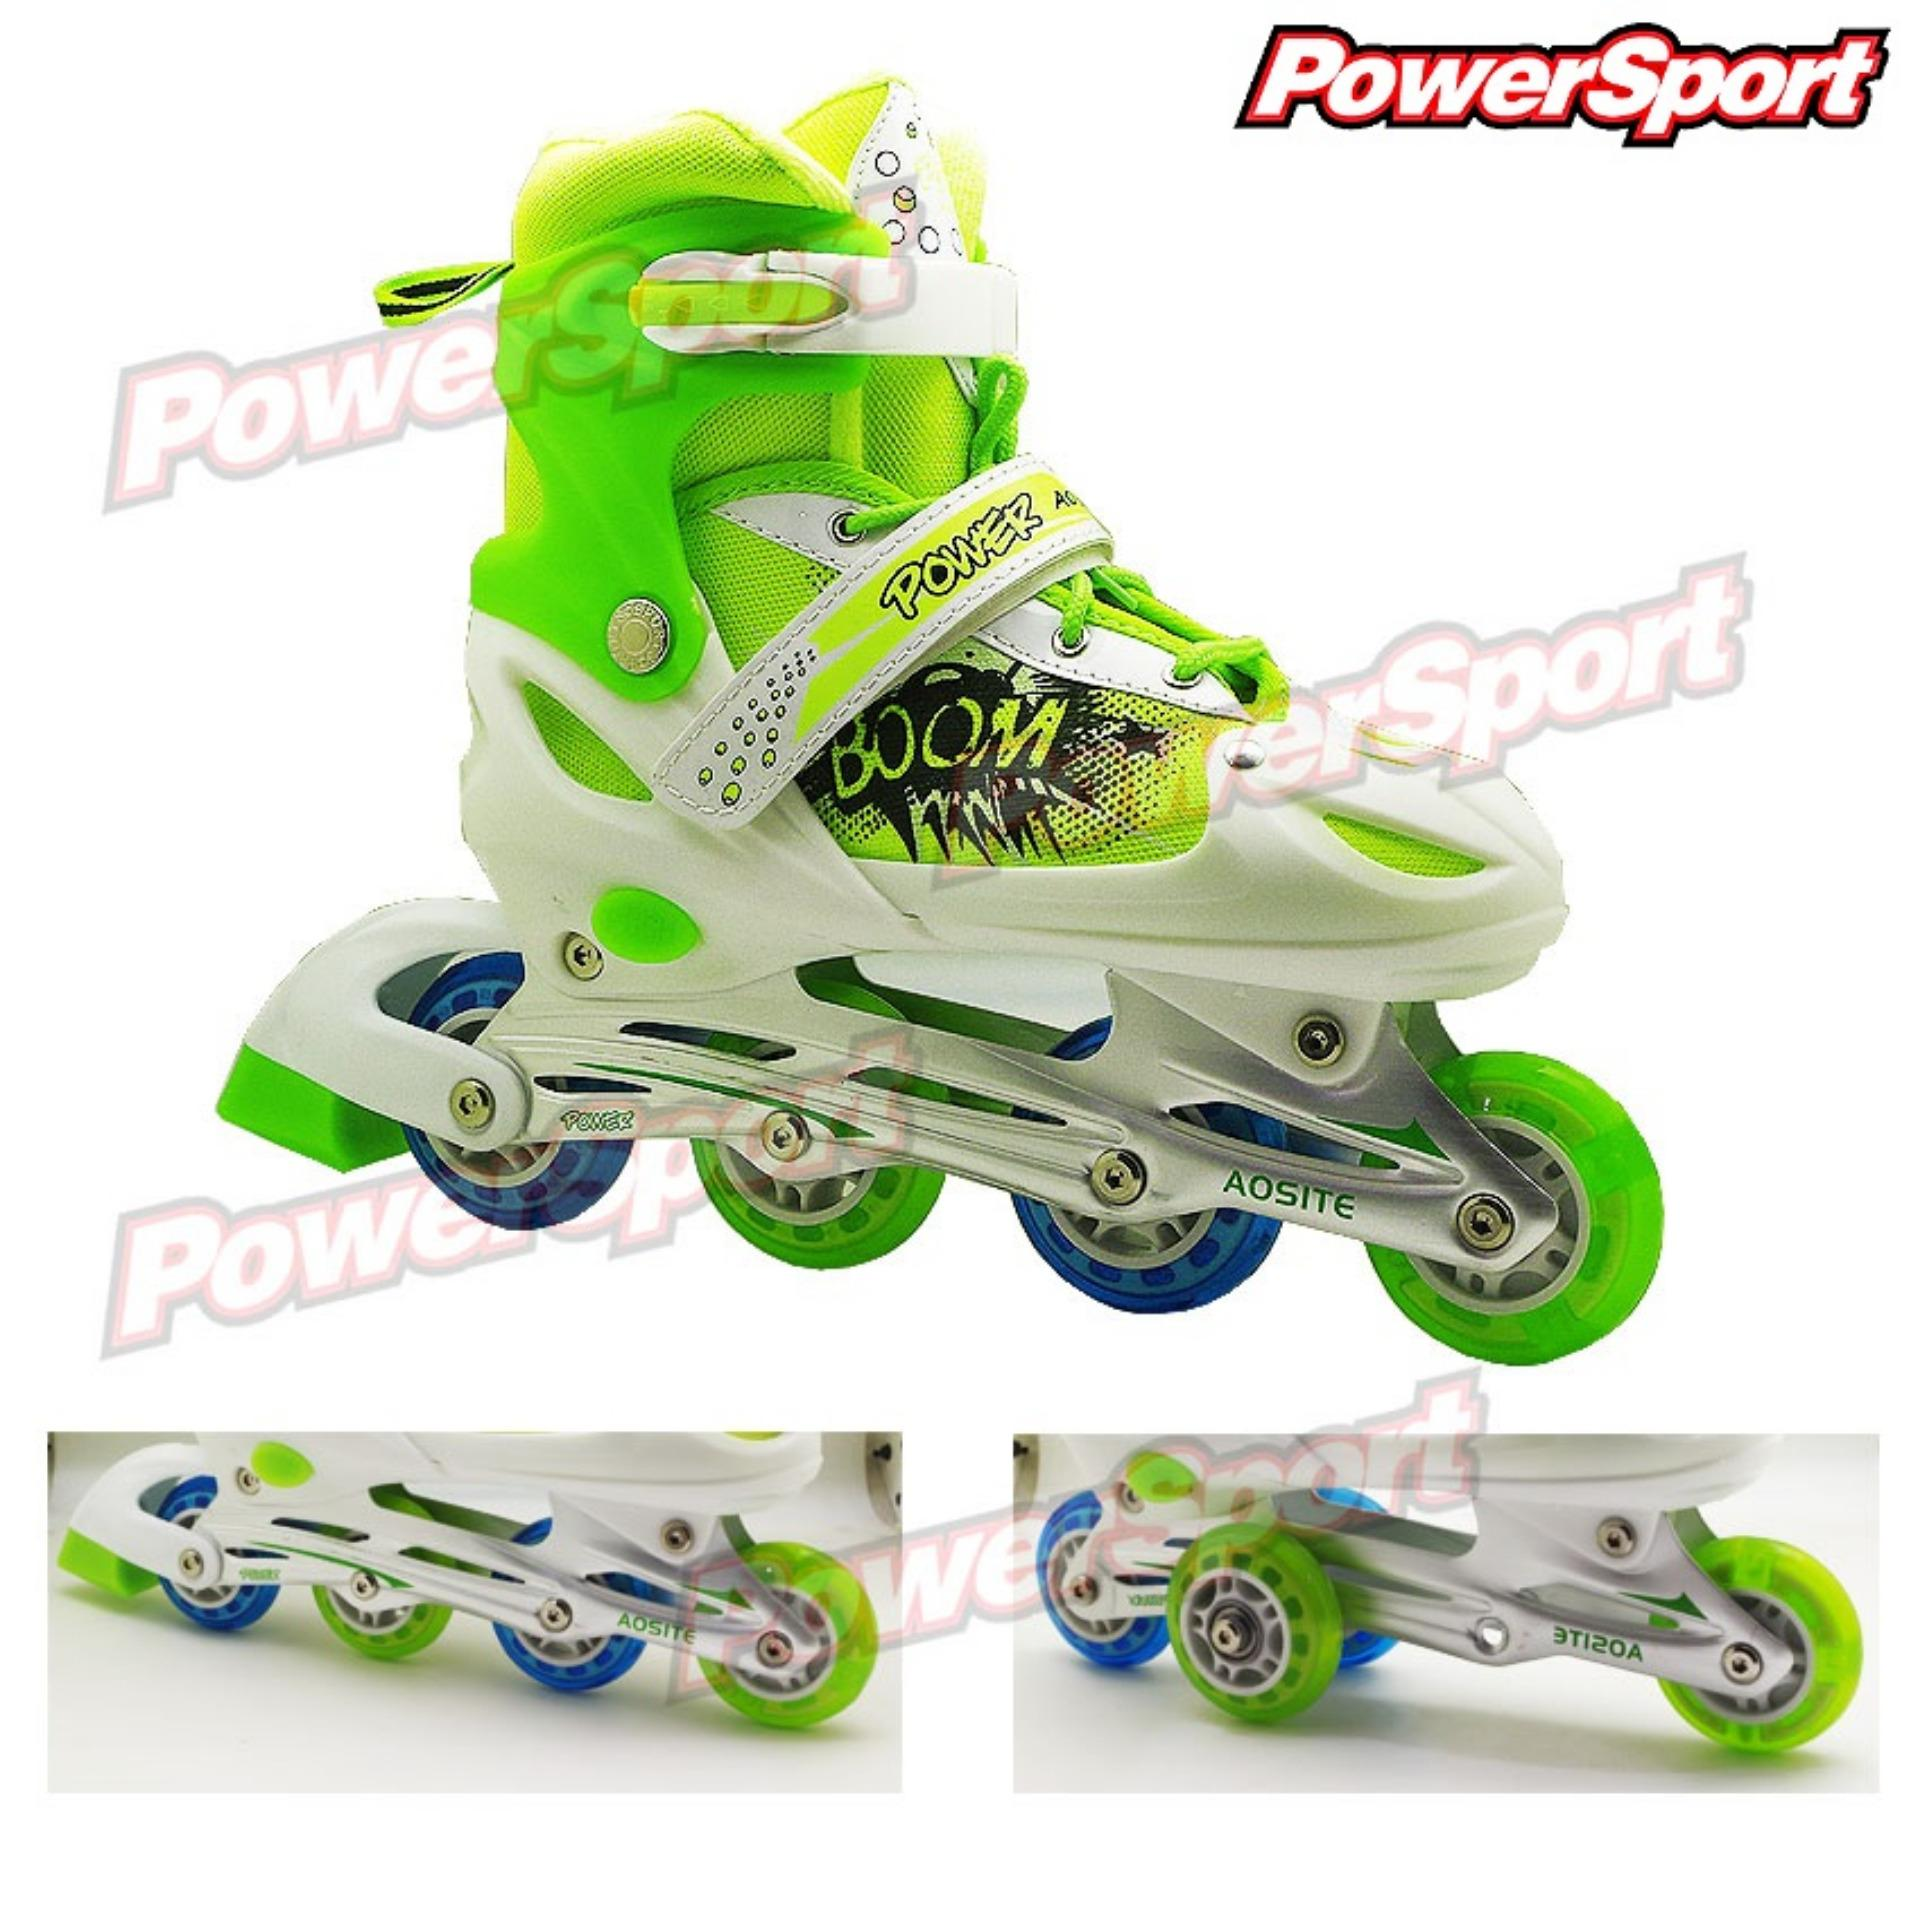 Powersport Boom Inline Skate Sepatu Roda Light Up Adjustable Wheel L 38 42 Diskon Indonesia